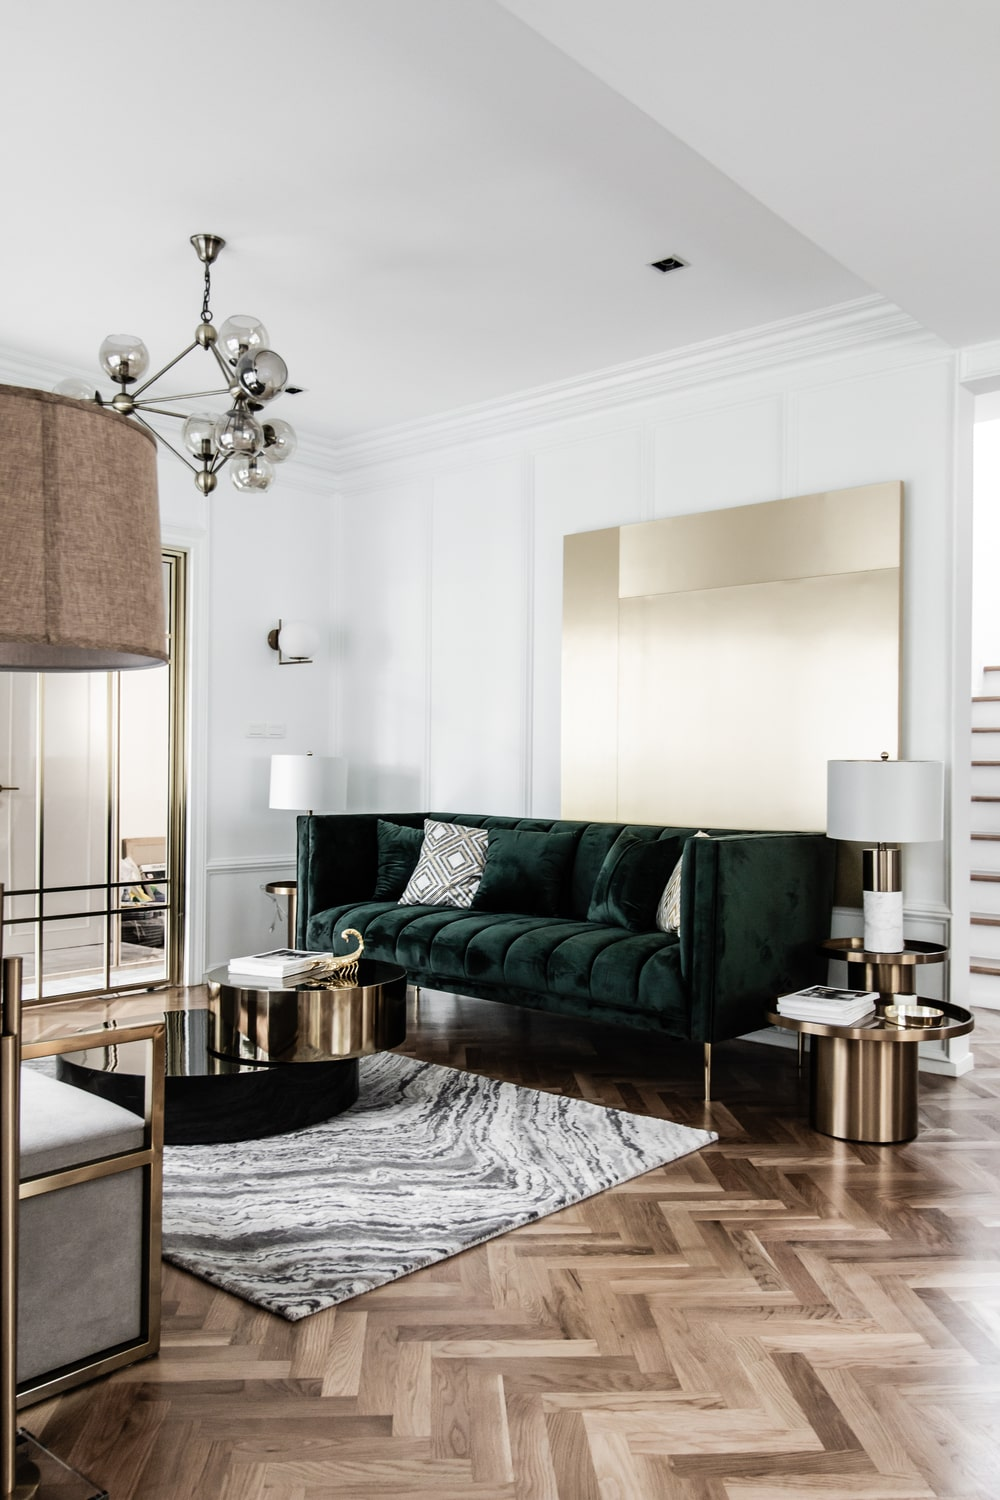 The light tone of the area rug is contrasted by the black velvet sofa.